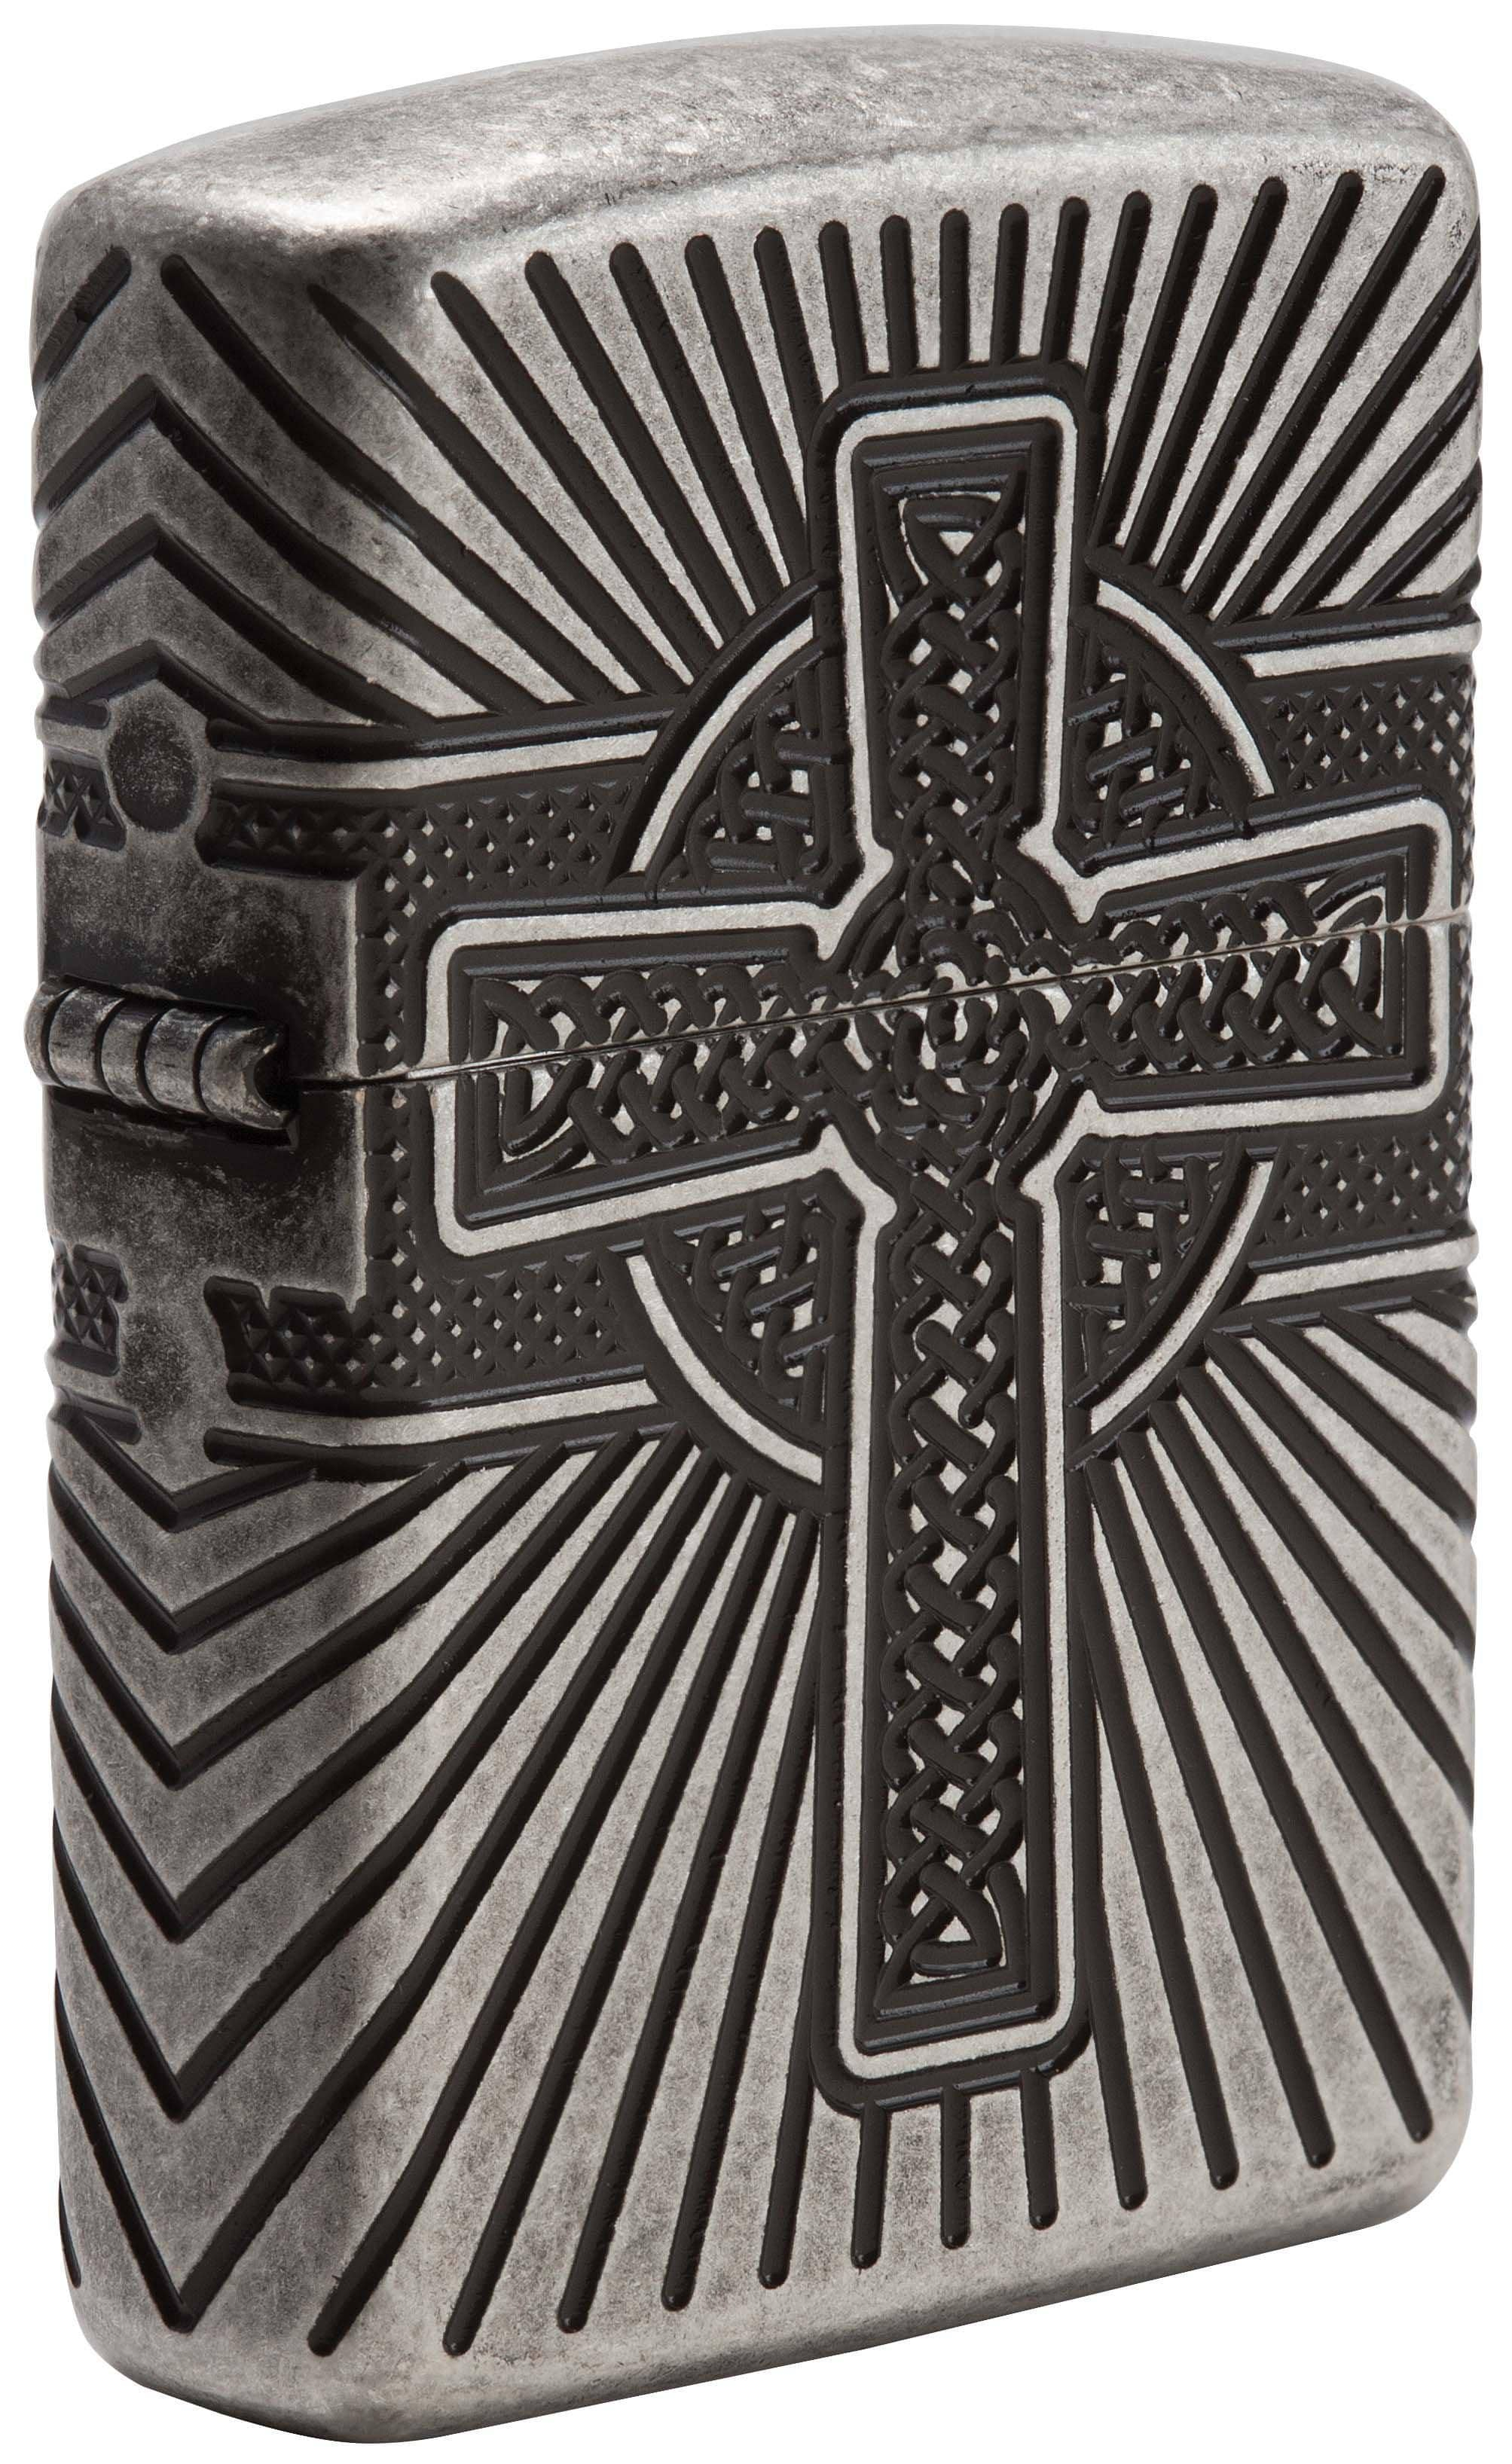 Zippo Lighter: Armor Multicut Celtic Cross and Knot - Antique Silver 29667 - Gear Exec